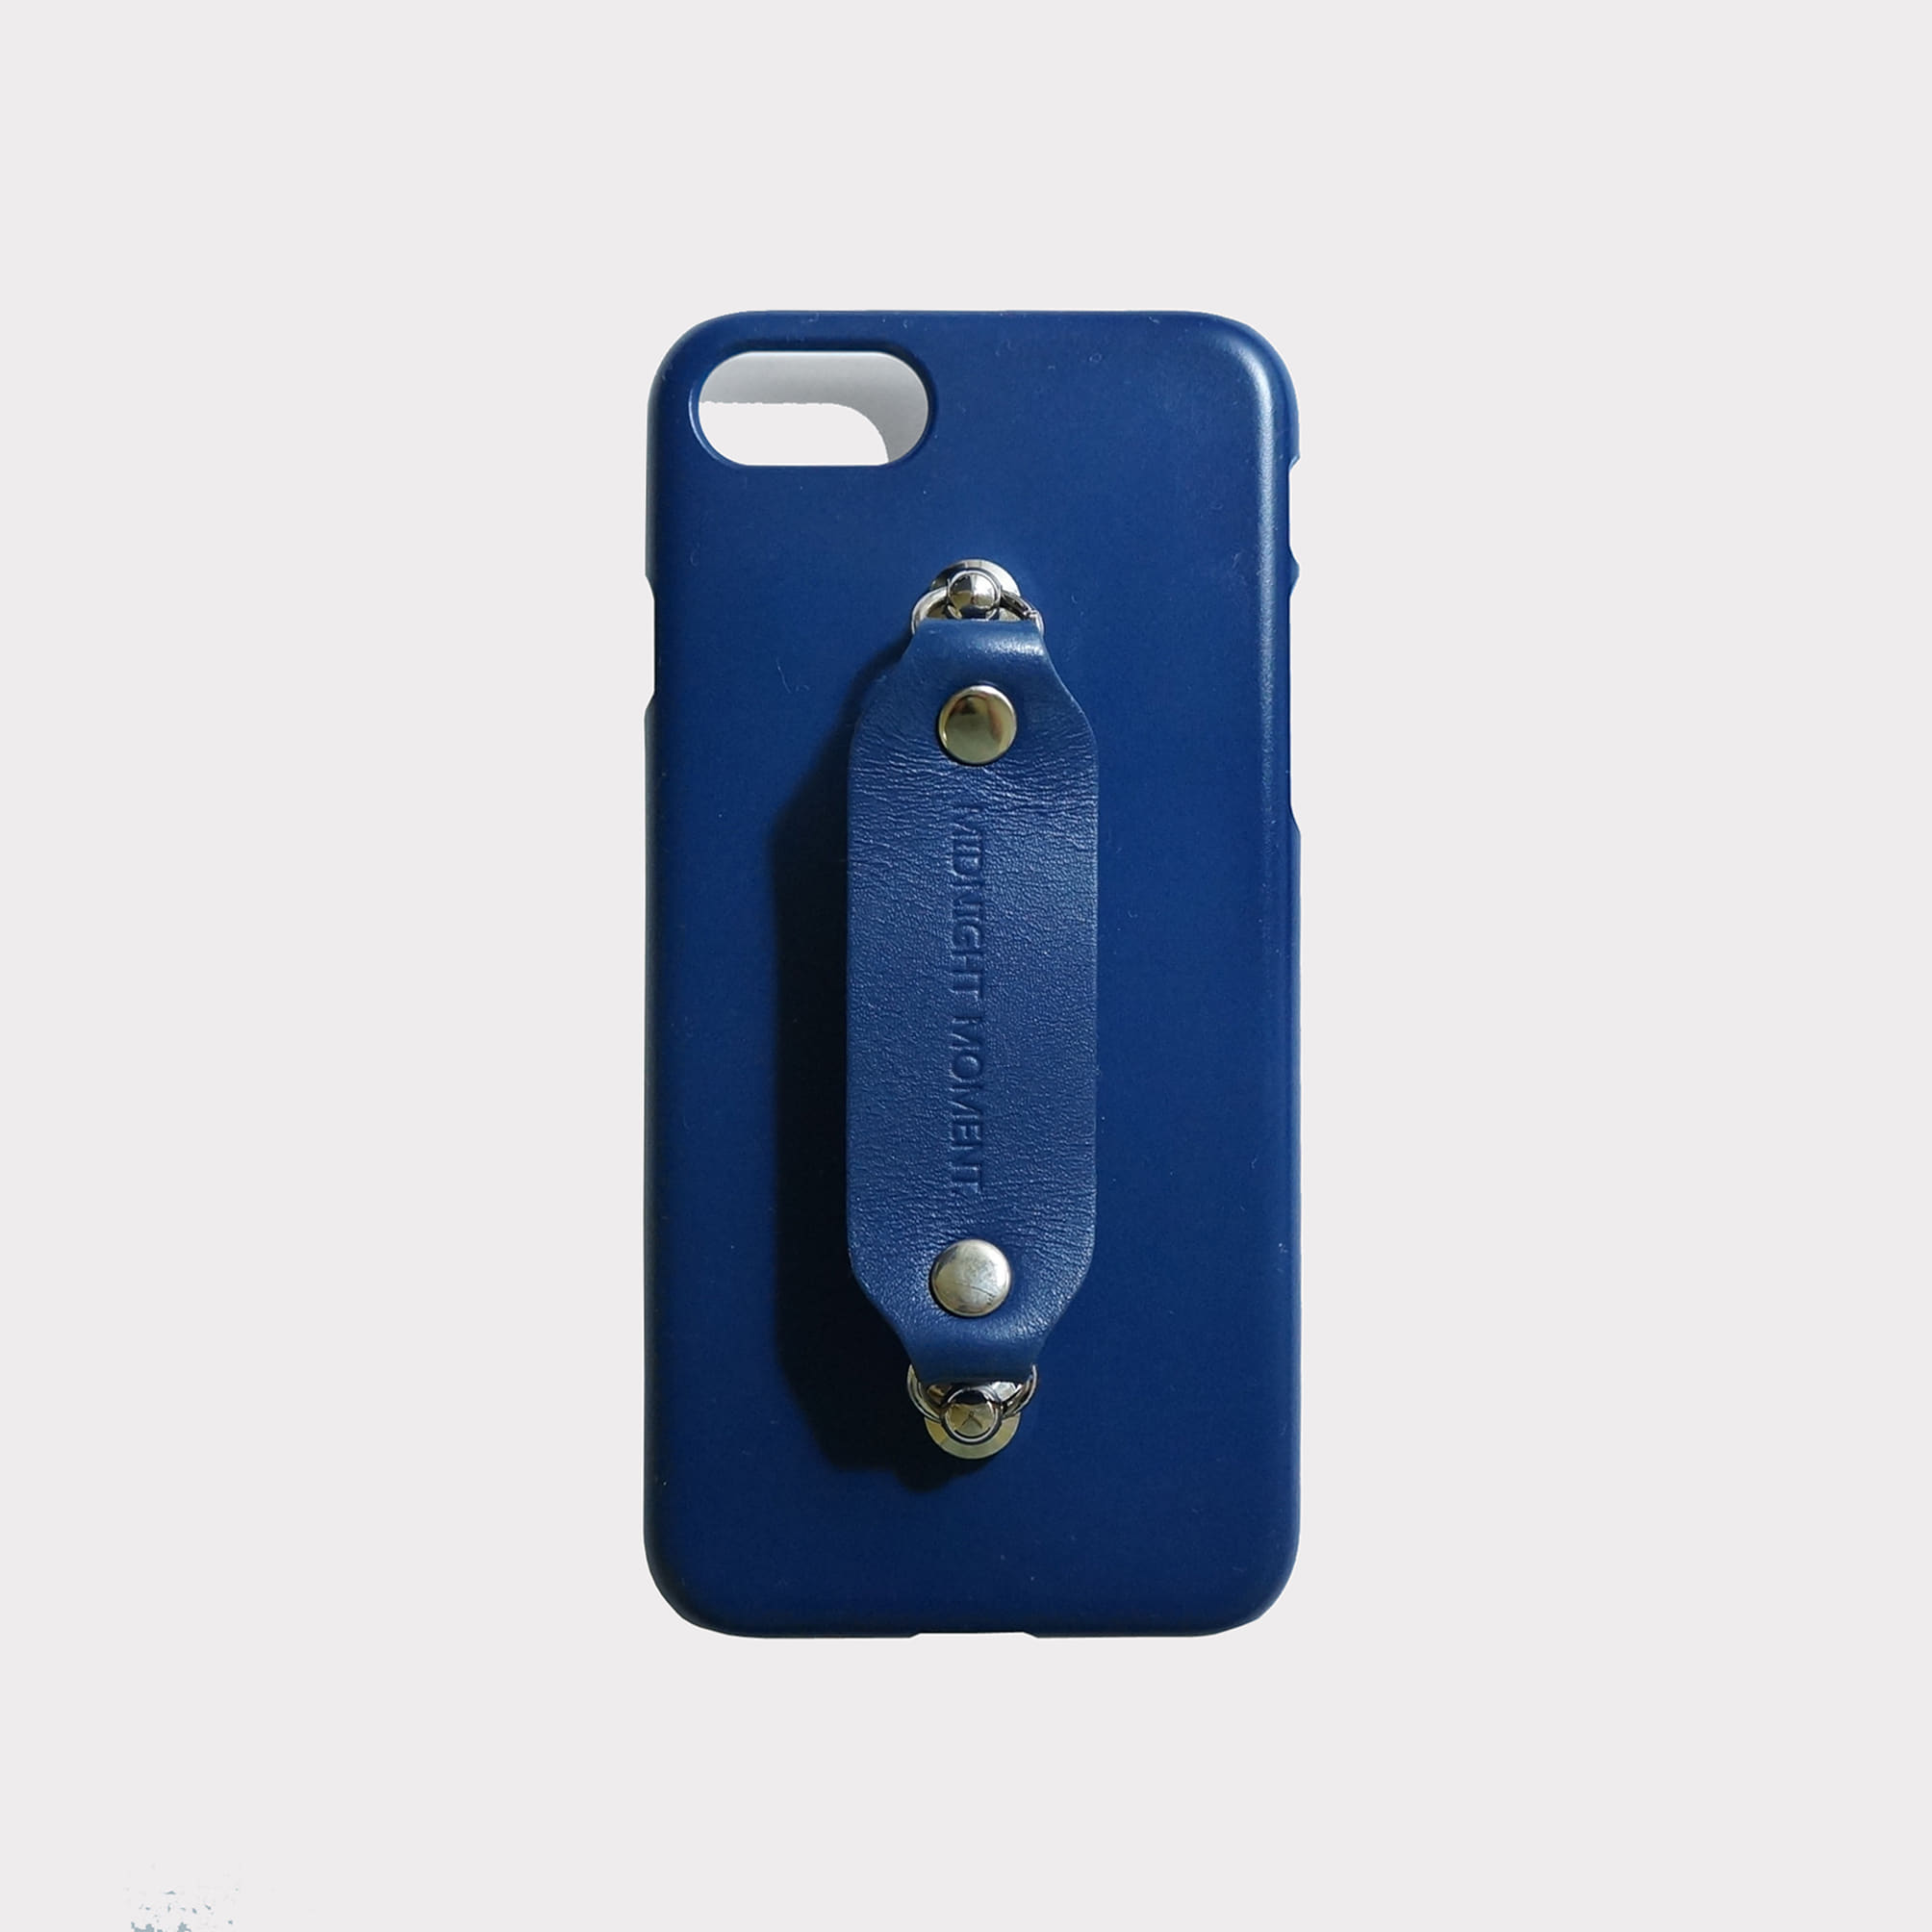 leather grip case navy - navy